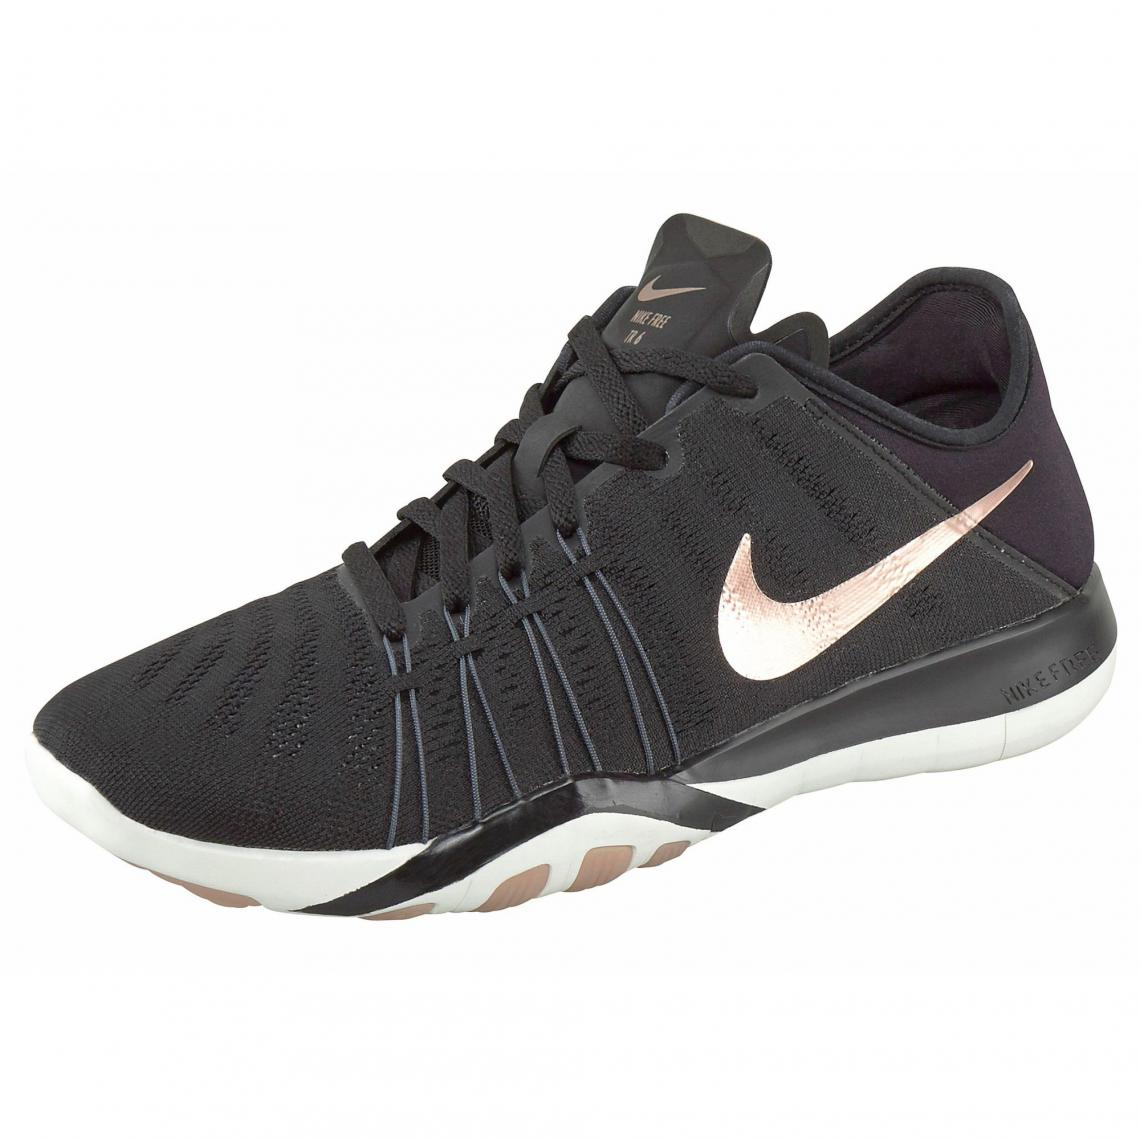 Nike Free Trainer 6 chaussures fitness femme - Noir Nike Femme 449e7f4a7a5